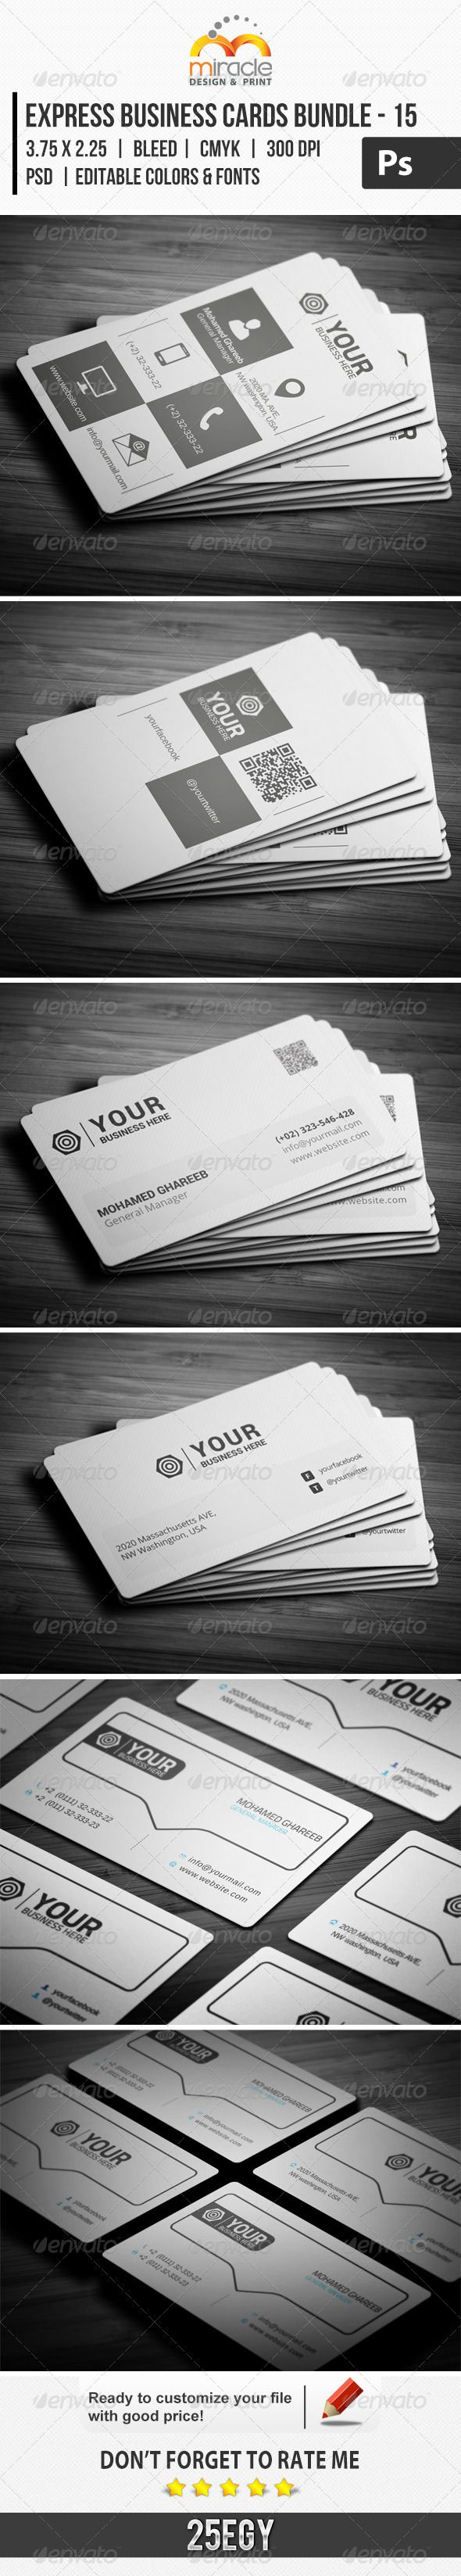 Express business cards bundle psd print template download http express business cards bundle psd print template download httpgraphicriver reheart Gallery